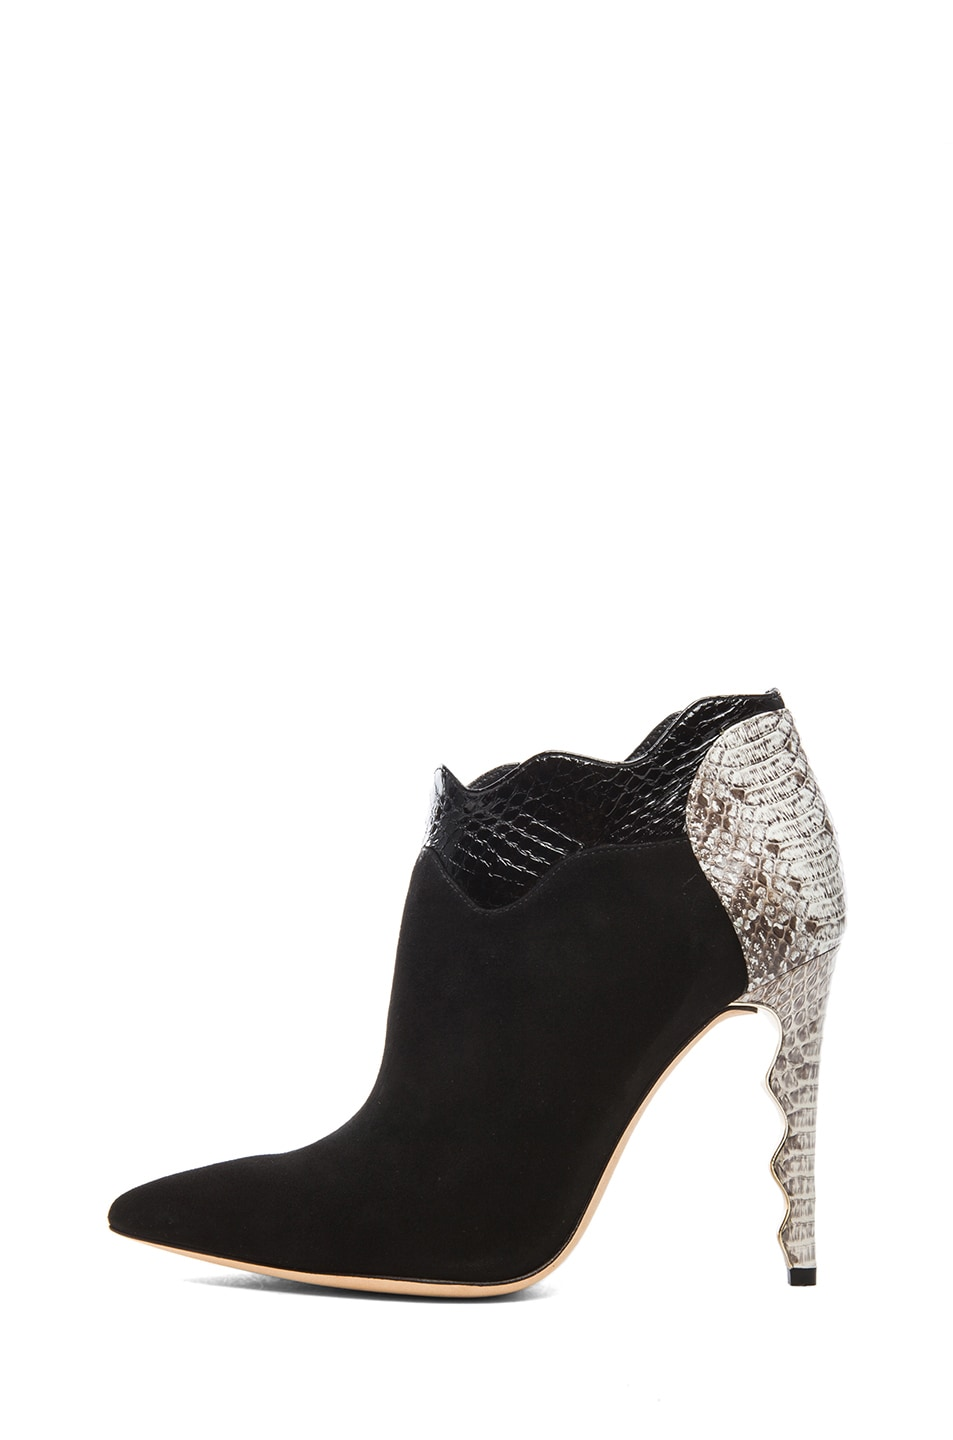 Image 1 of Alexandre Birman Calico Suede & Watersnake Booties in Black & Natural